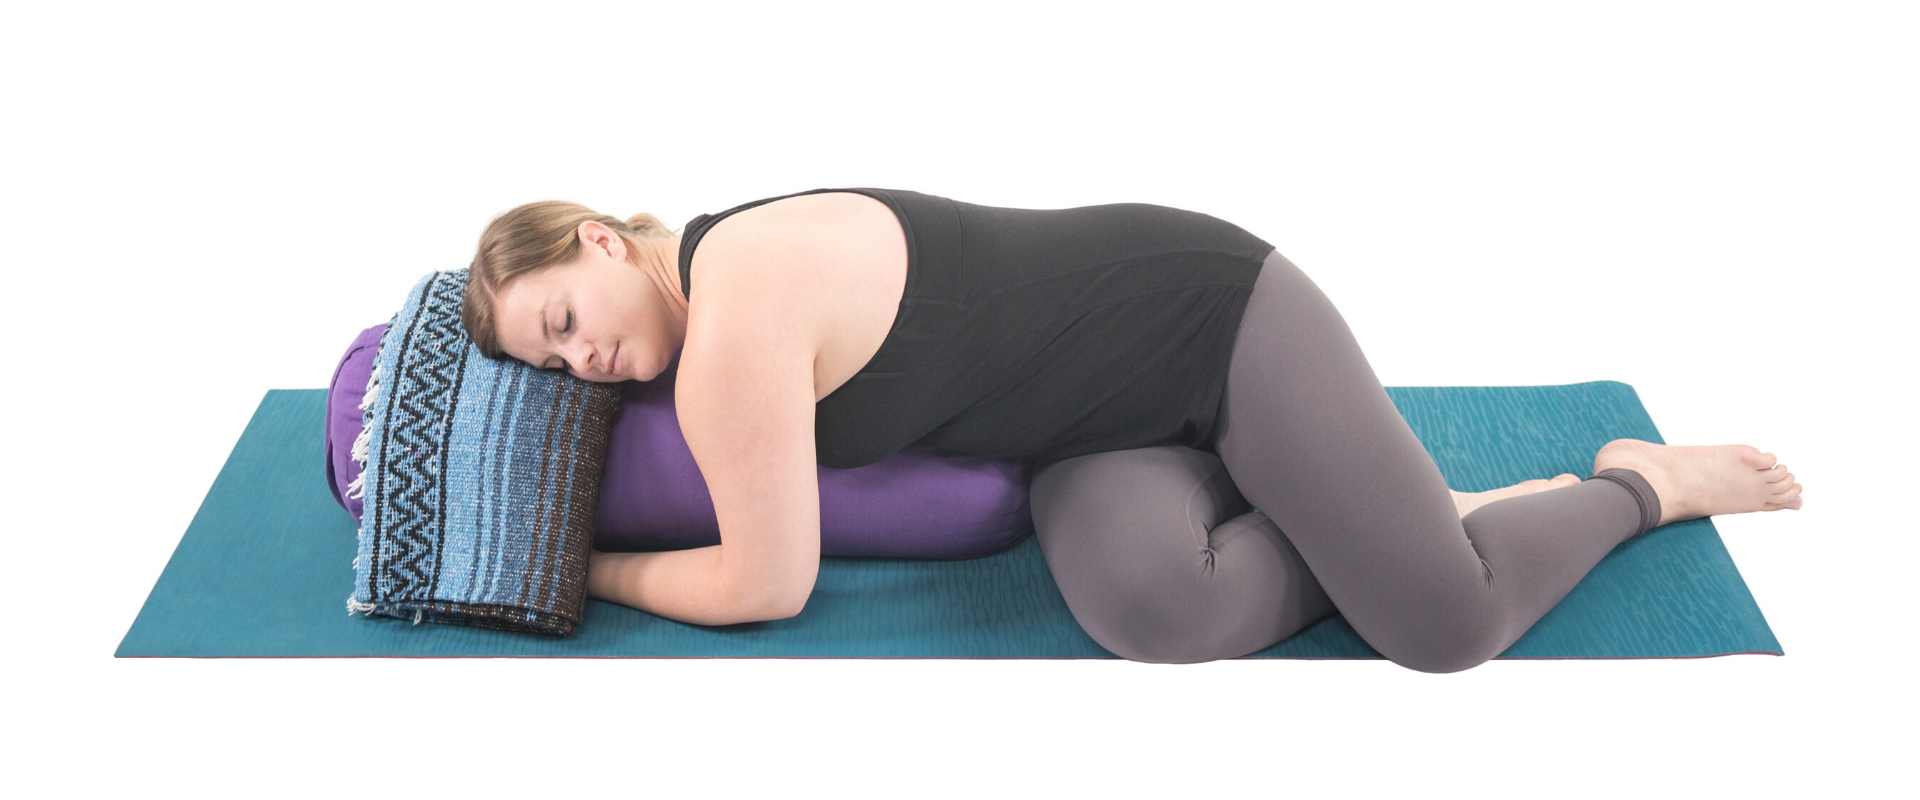 Woman practicing restorative yoga twist on a bolster.